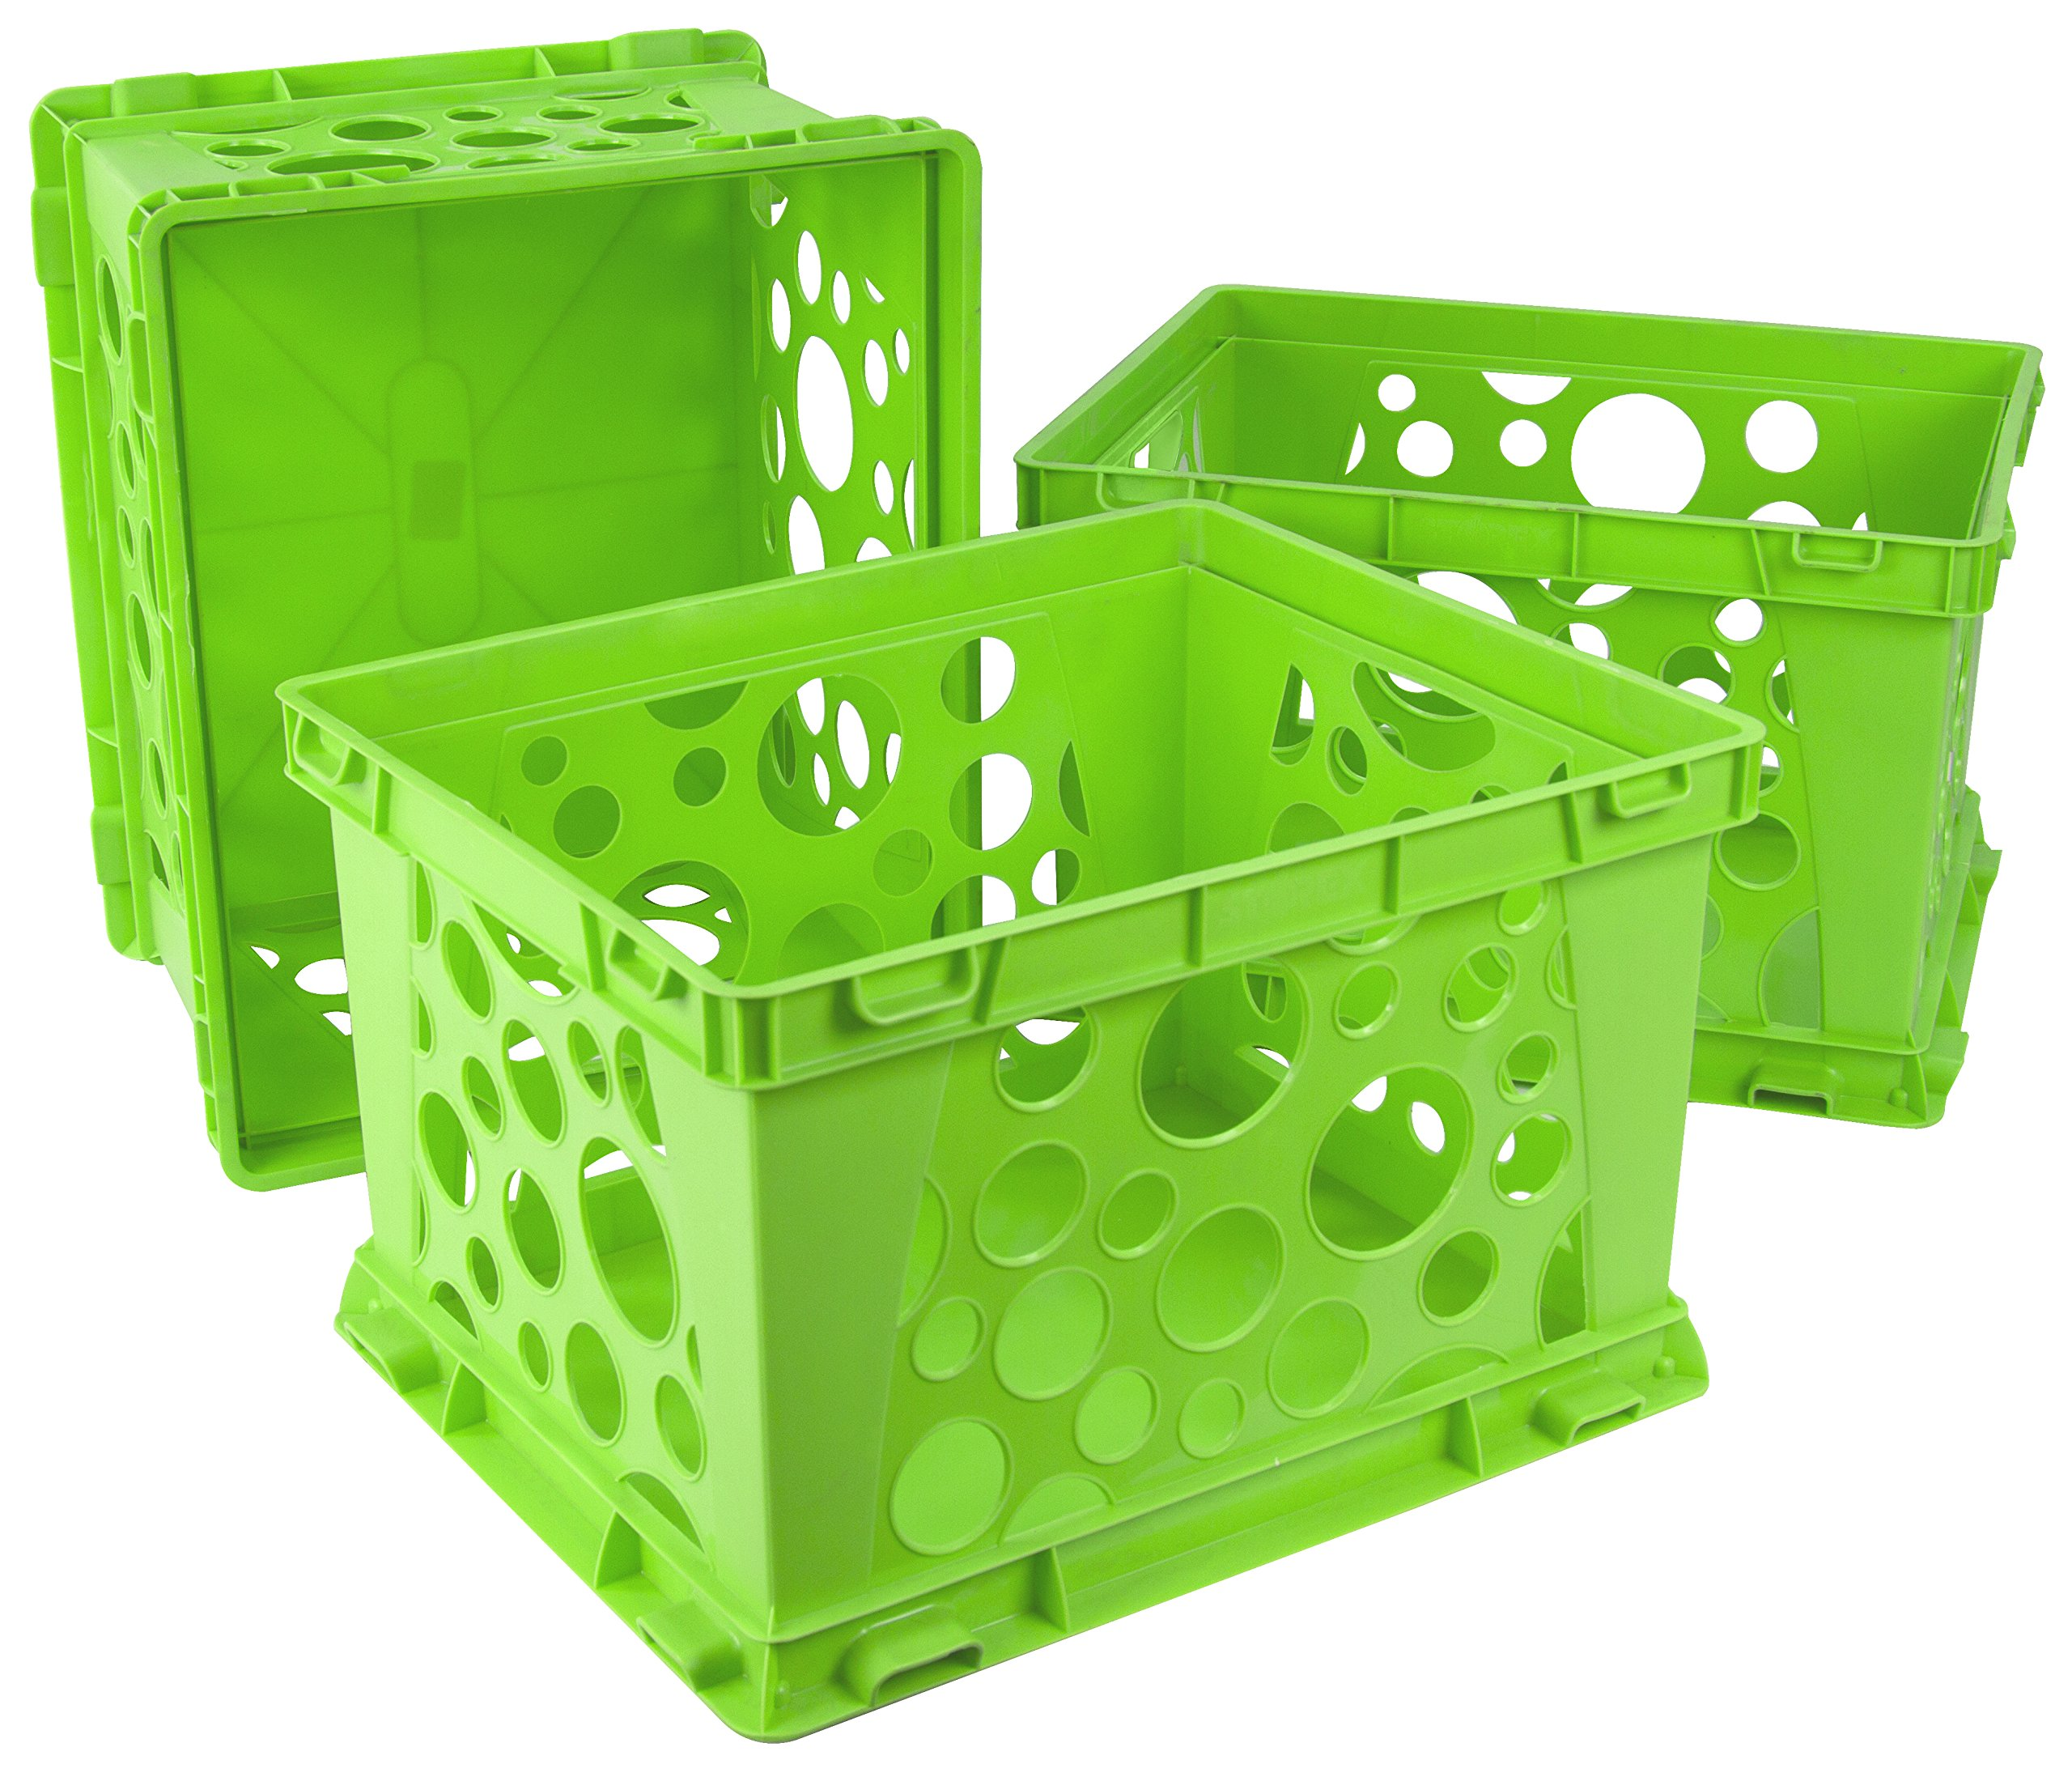 Storex Large Storage and Transport File Crate, 17.25 x 14.25 x 10.5 Inches, Green, Case of 3 (STX61556U03C) by Storex (Image #1)